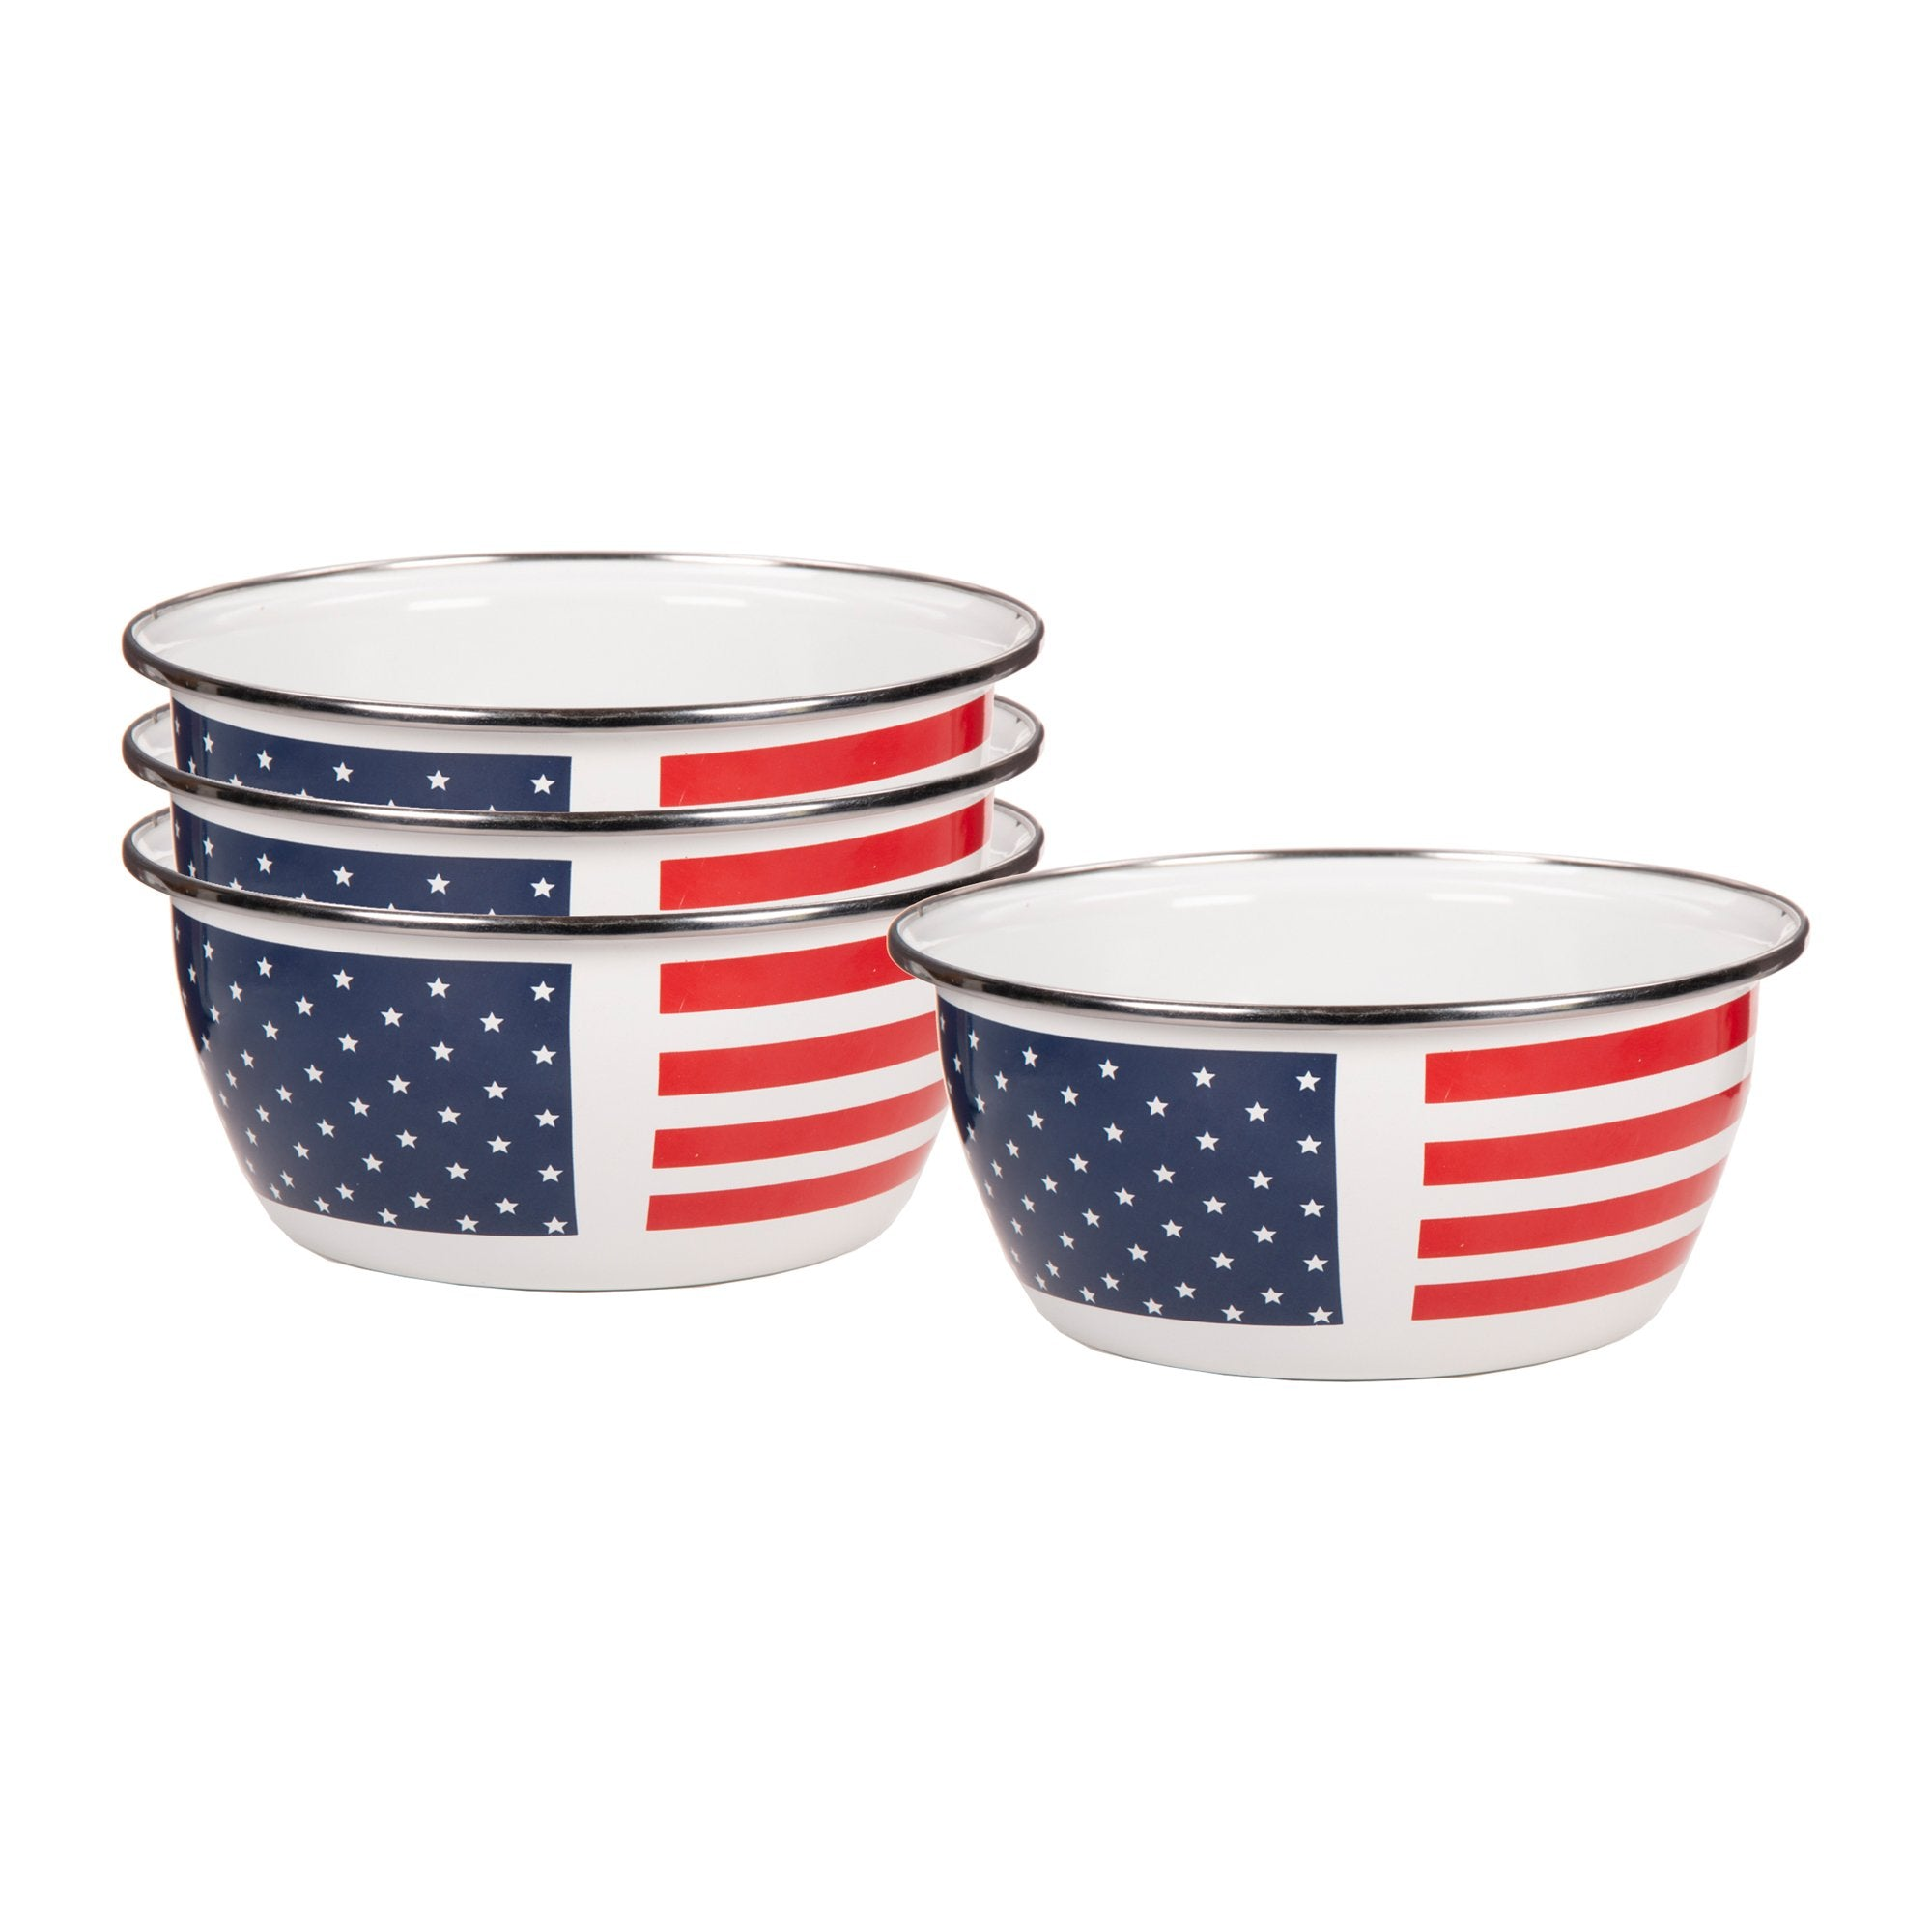 SS61S4 - Set of 4 - Enamelware Stars and Stripes - Salad Bowls